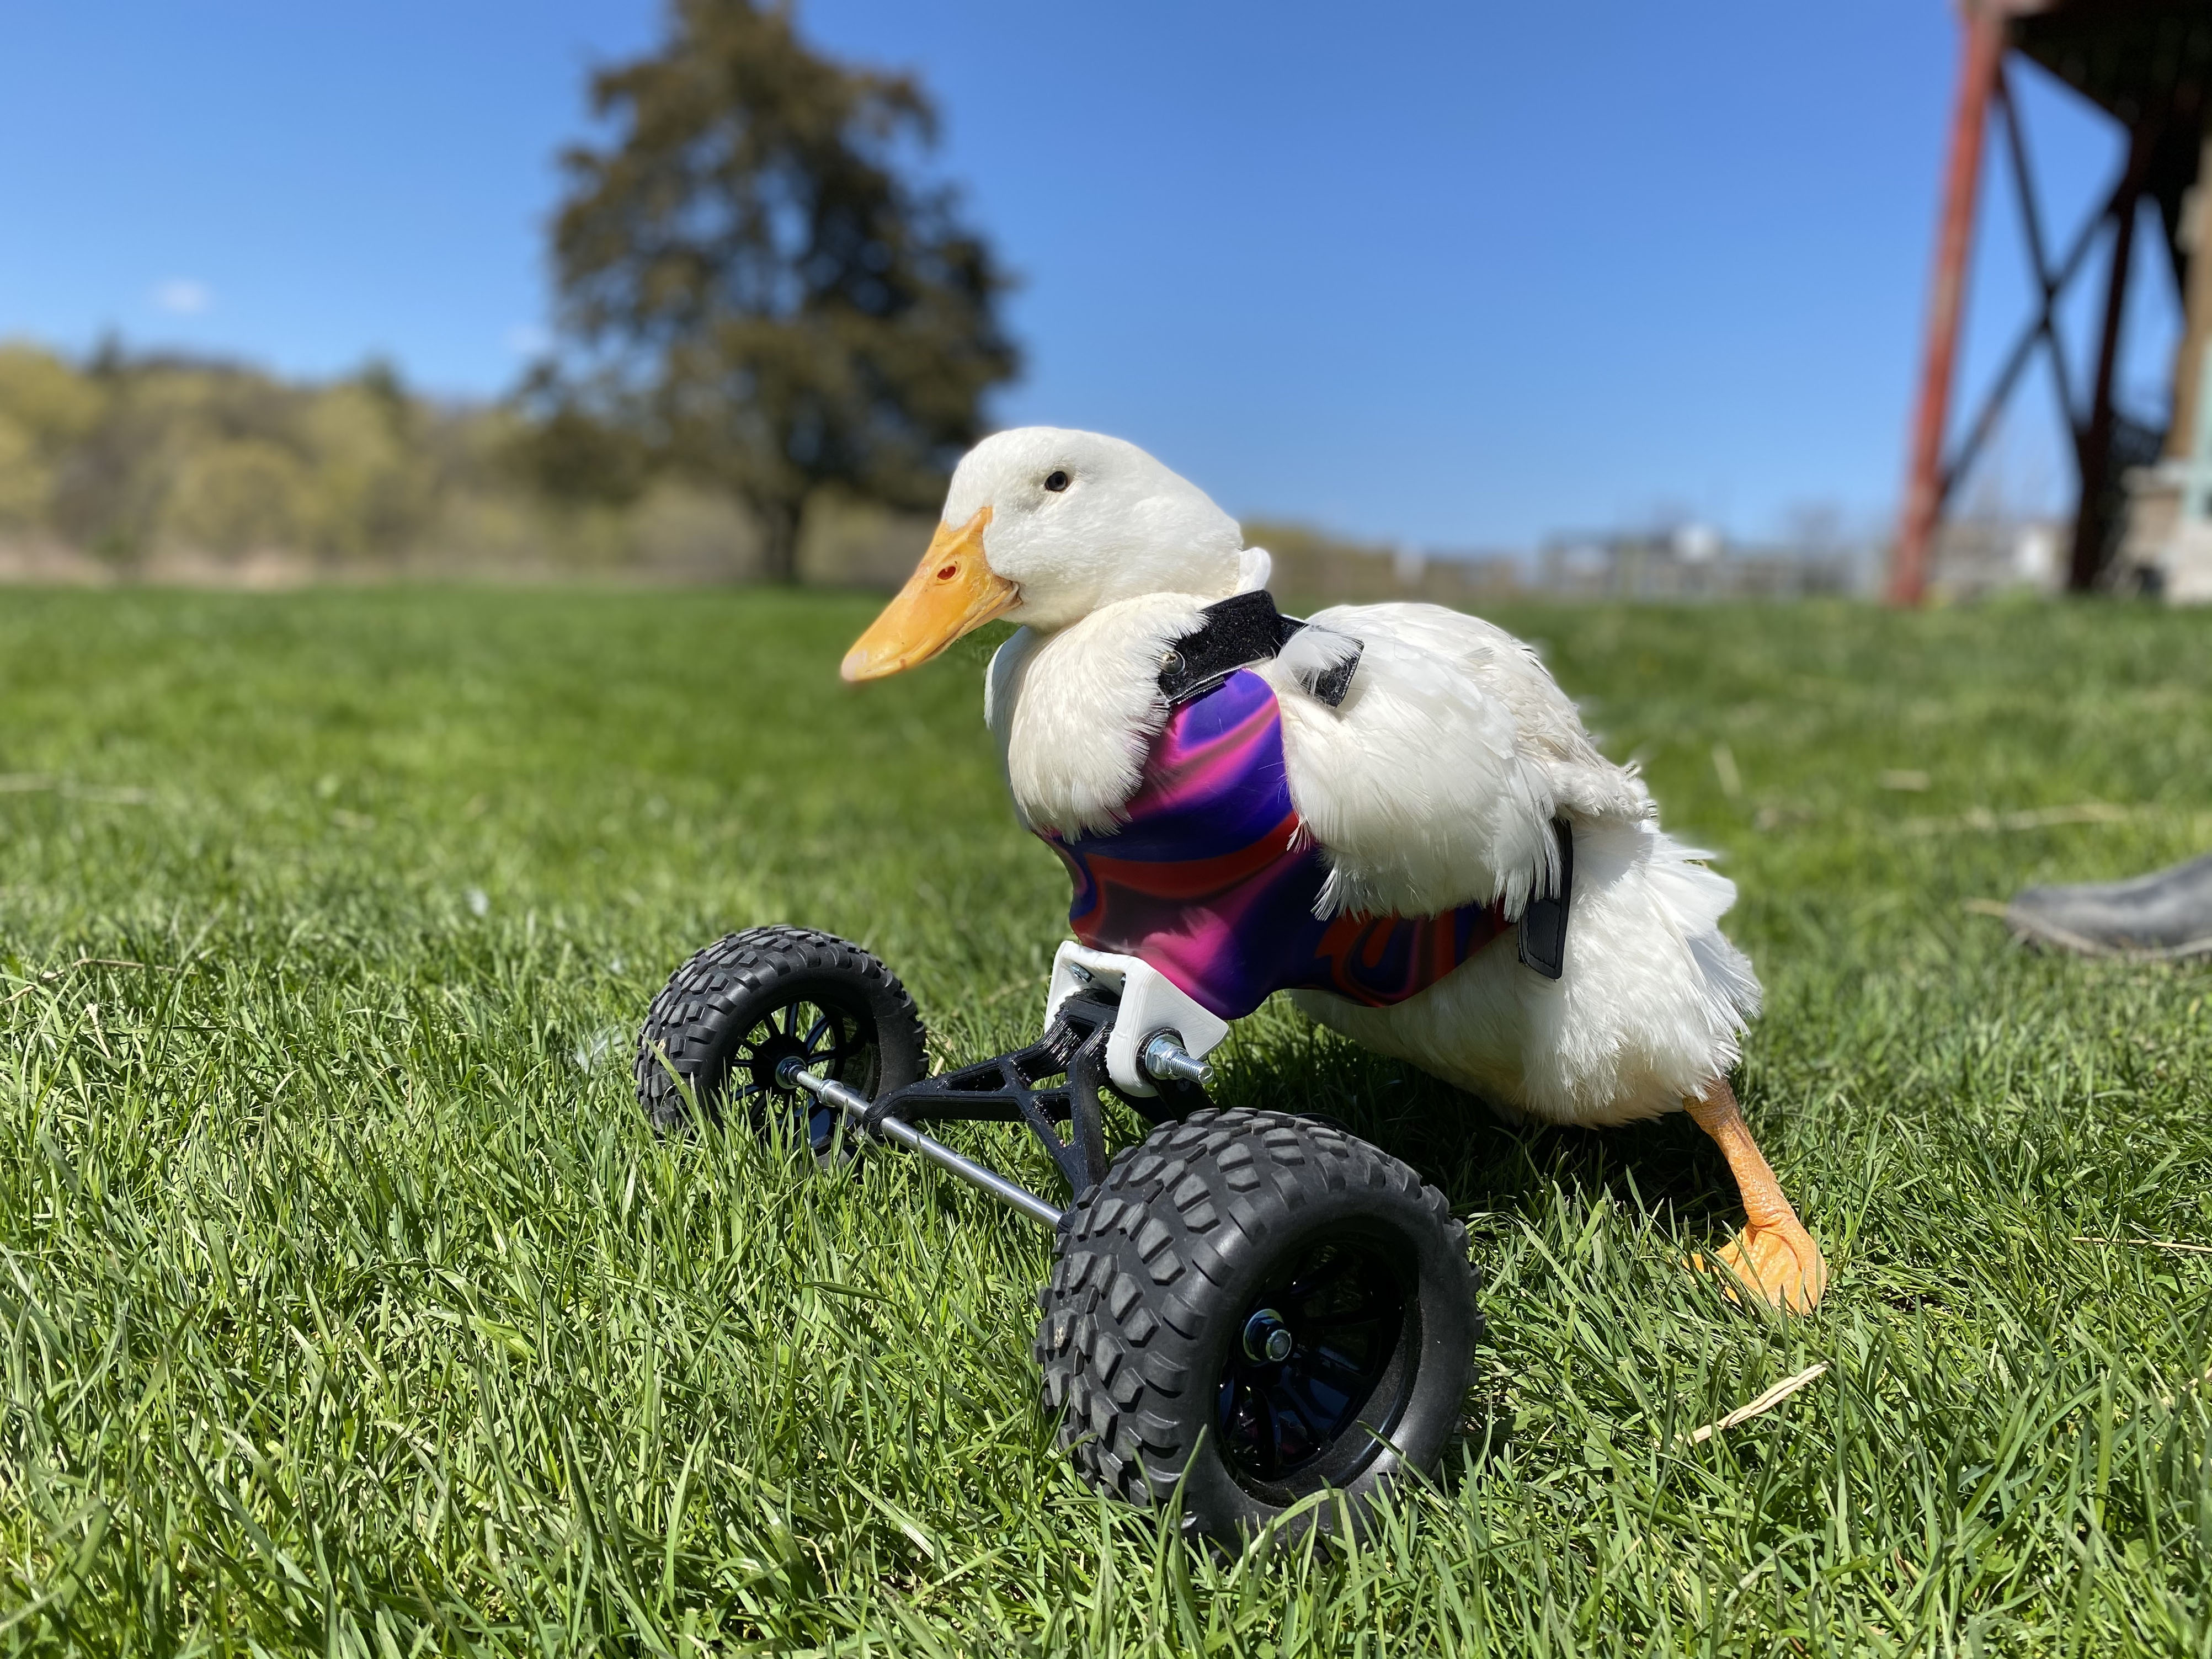 MONSTER TR-DUCK! DISABLED DUCK LEFT PARALYSED AFTER ATTACK GETS DECKED OUT WITH MONSTER QUAD WHEELS Image